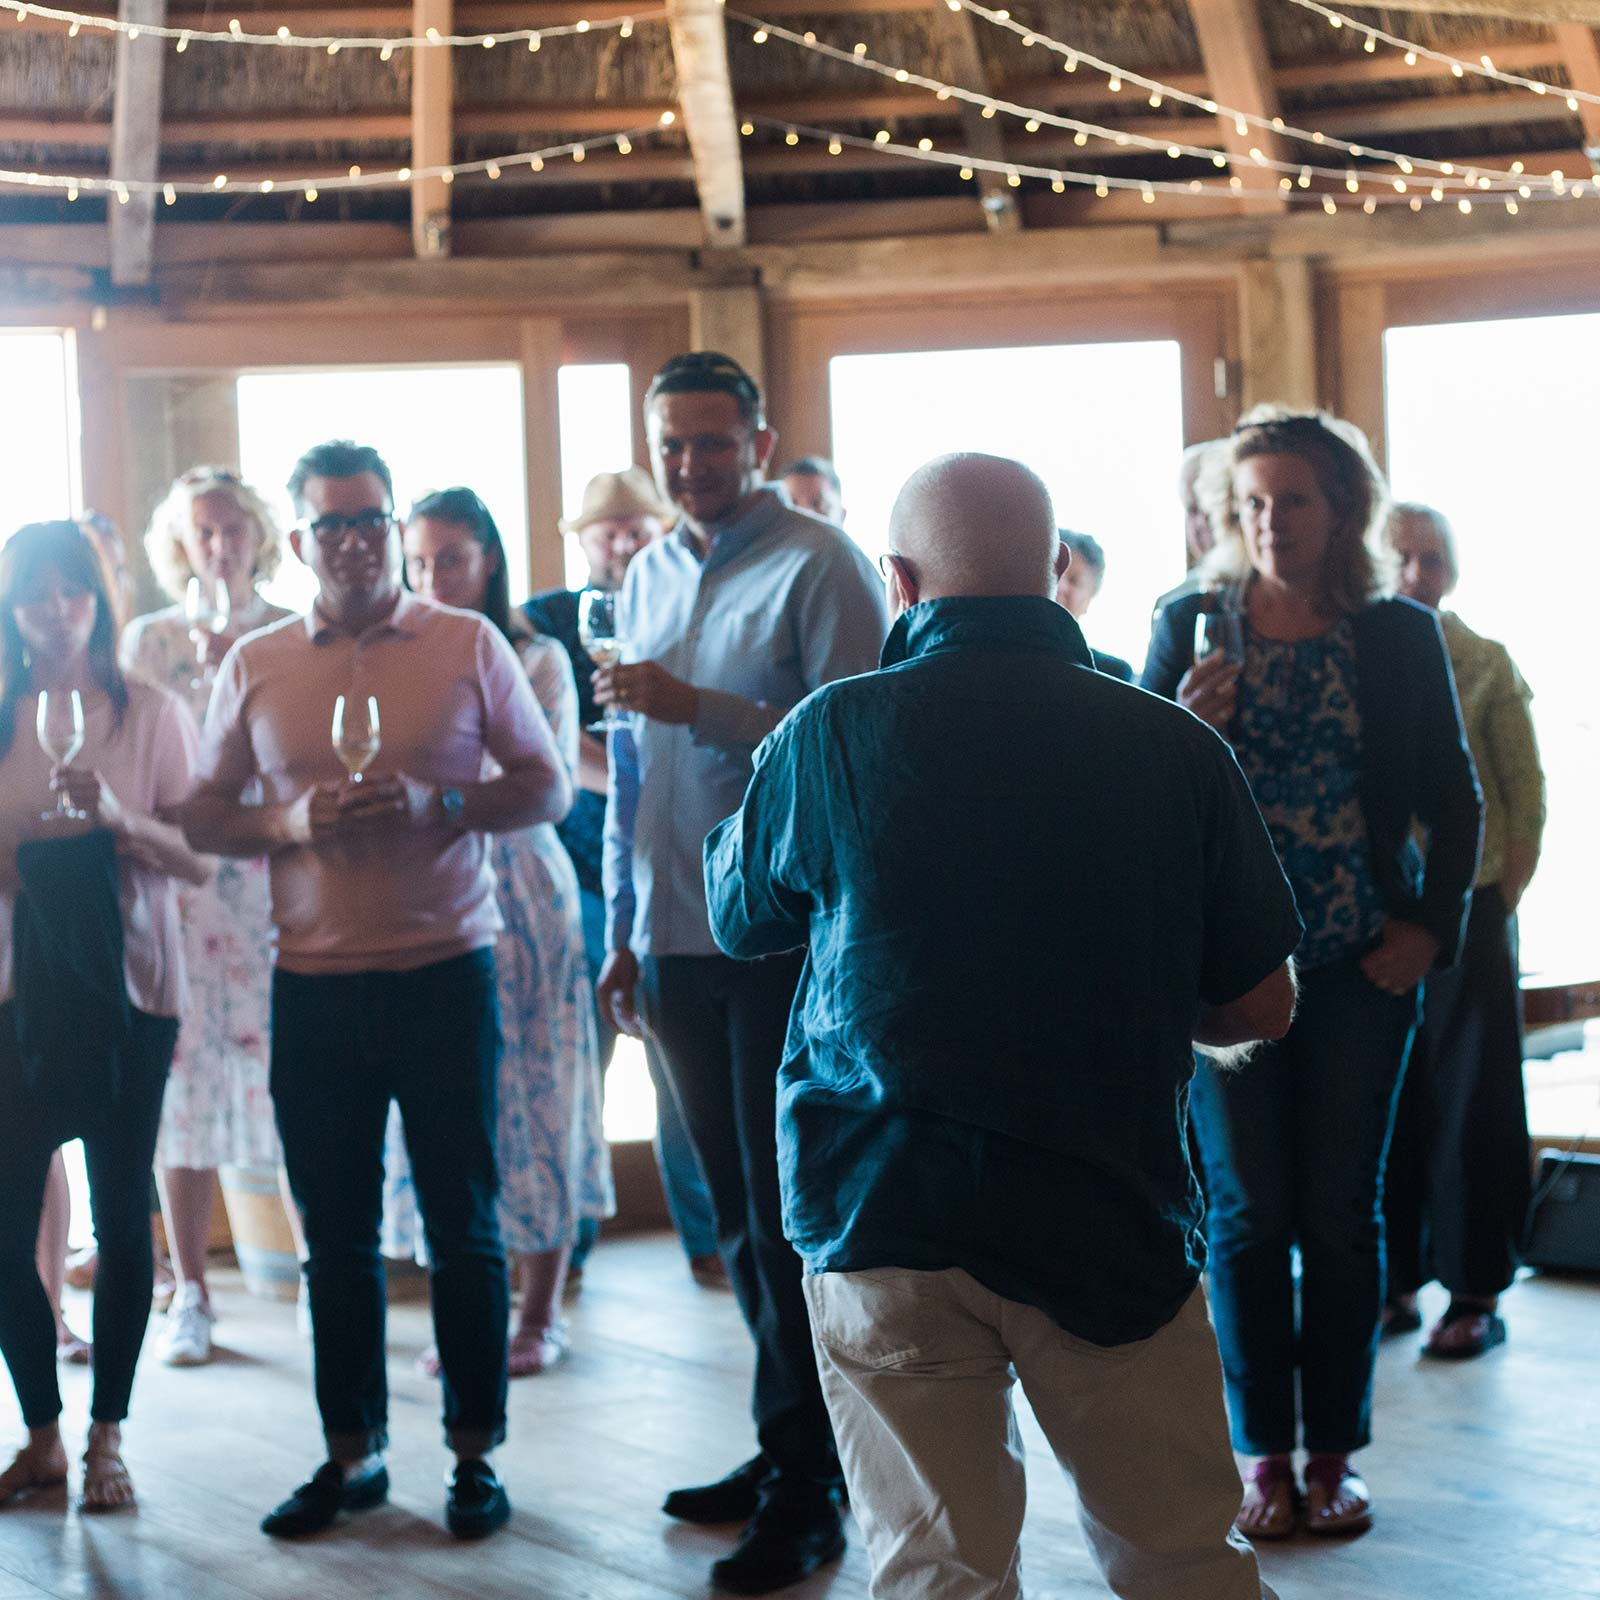 Guests enjoying drinks inside the round house at Brickhouse Vineyard's corporate event party.